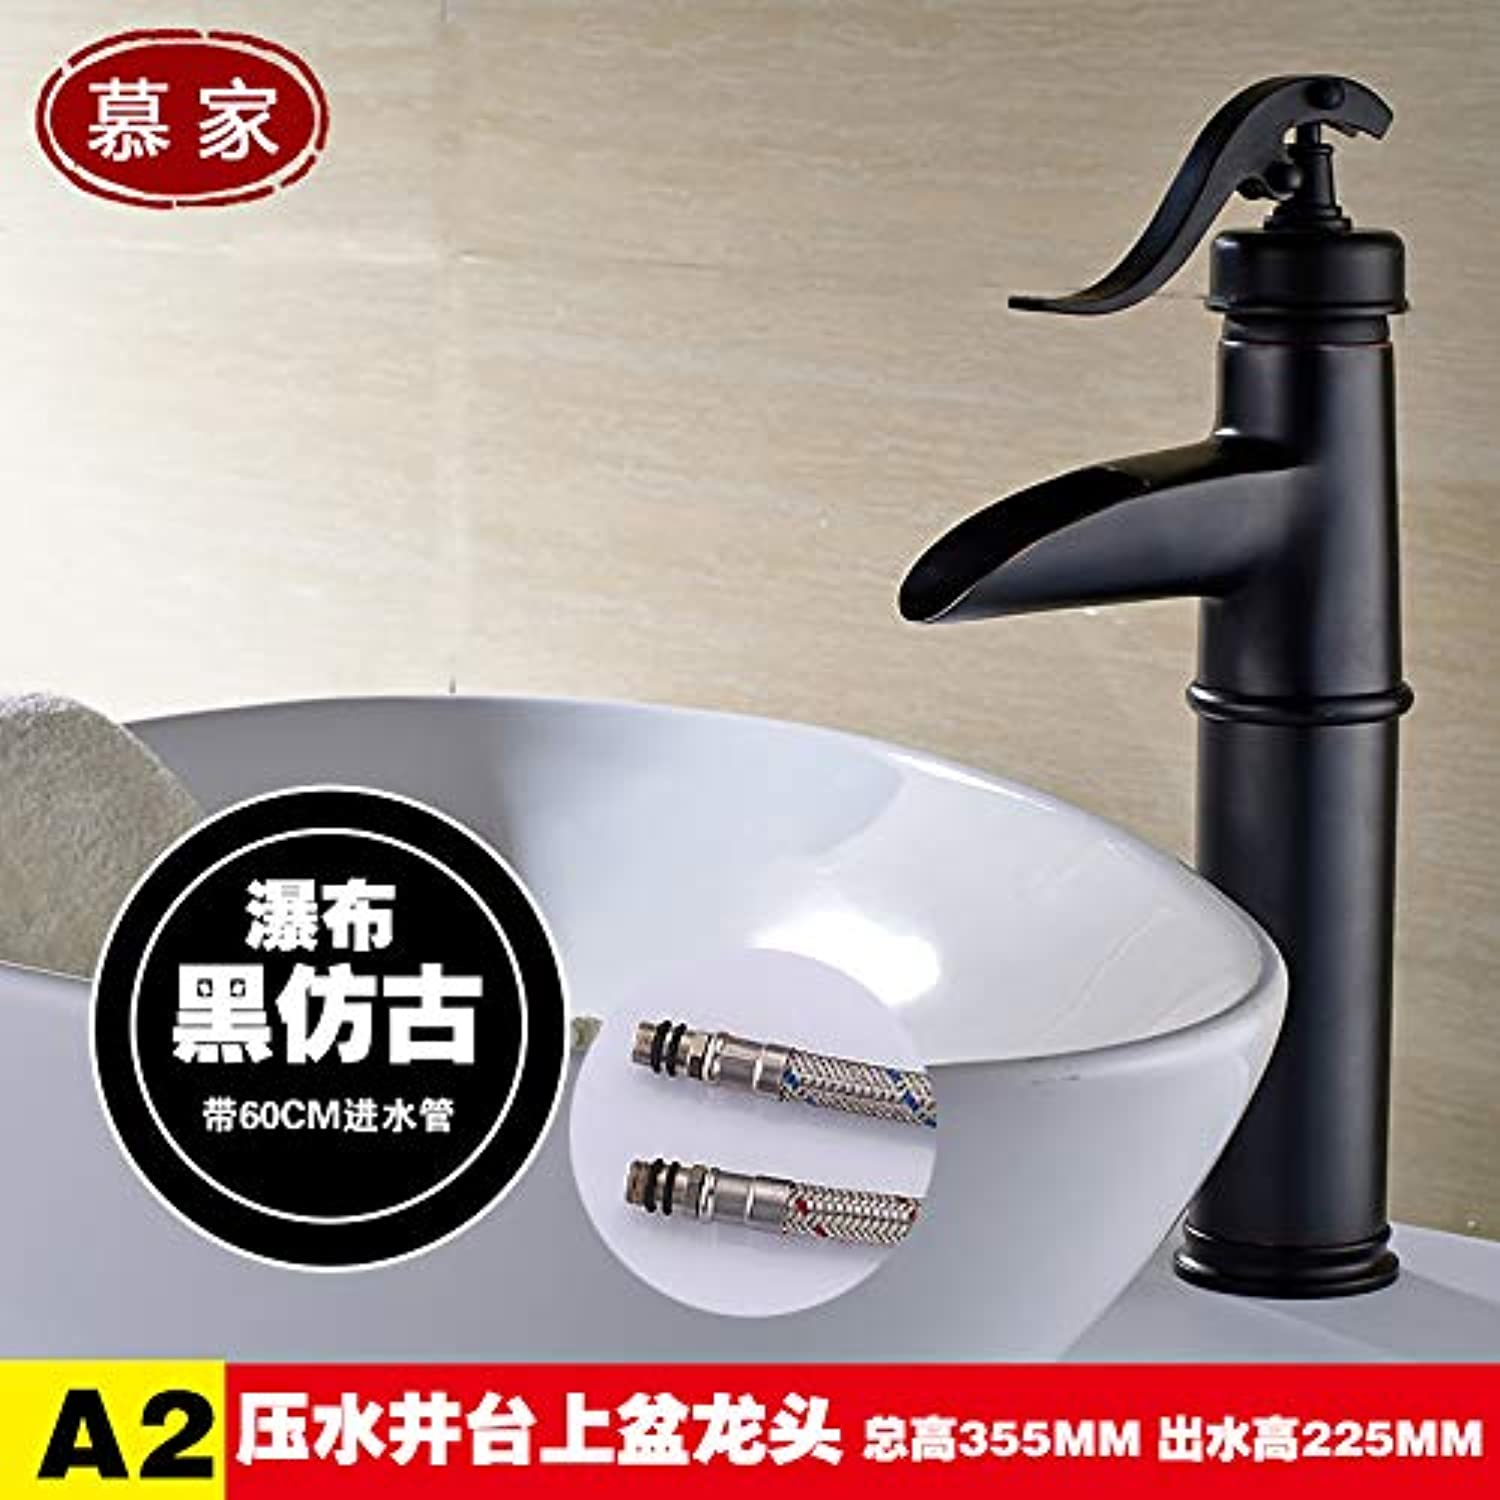 Hlluya Professional Sink Mixer Tap Kitchen Faucet All black antique copper basin faucet waterfall surface of the basin of cold water faucet Bathroom Cabinet faucet,A2